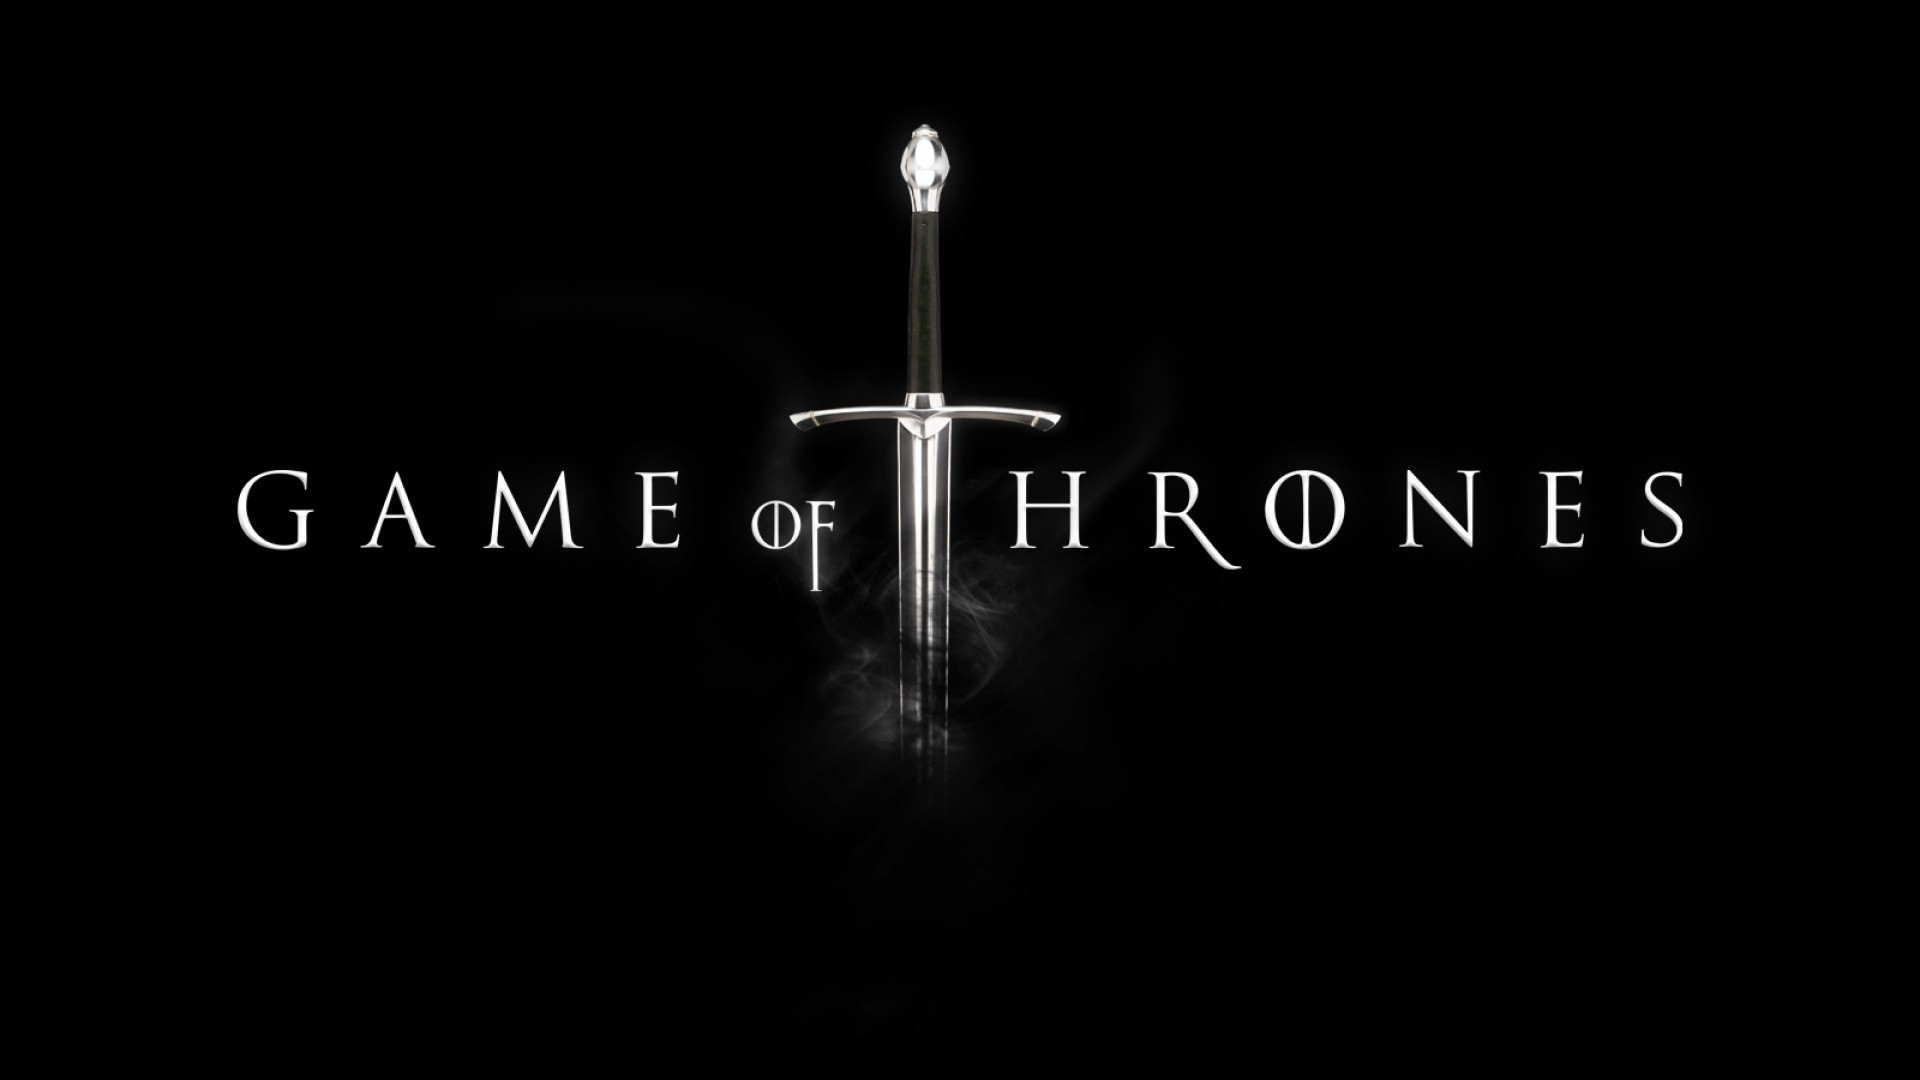 Game of Thrones Logo Wallpaper